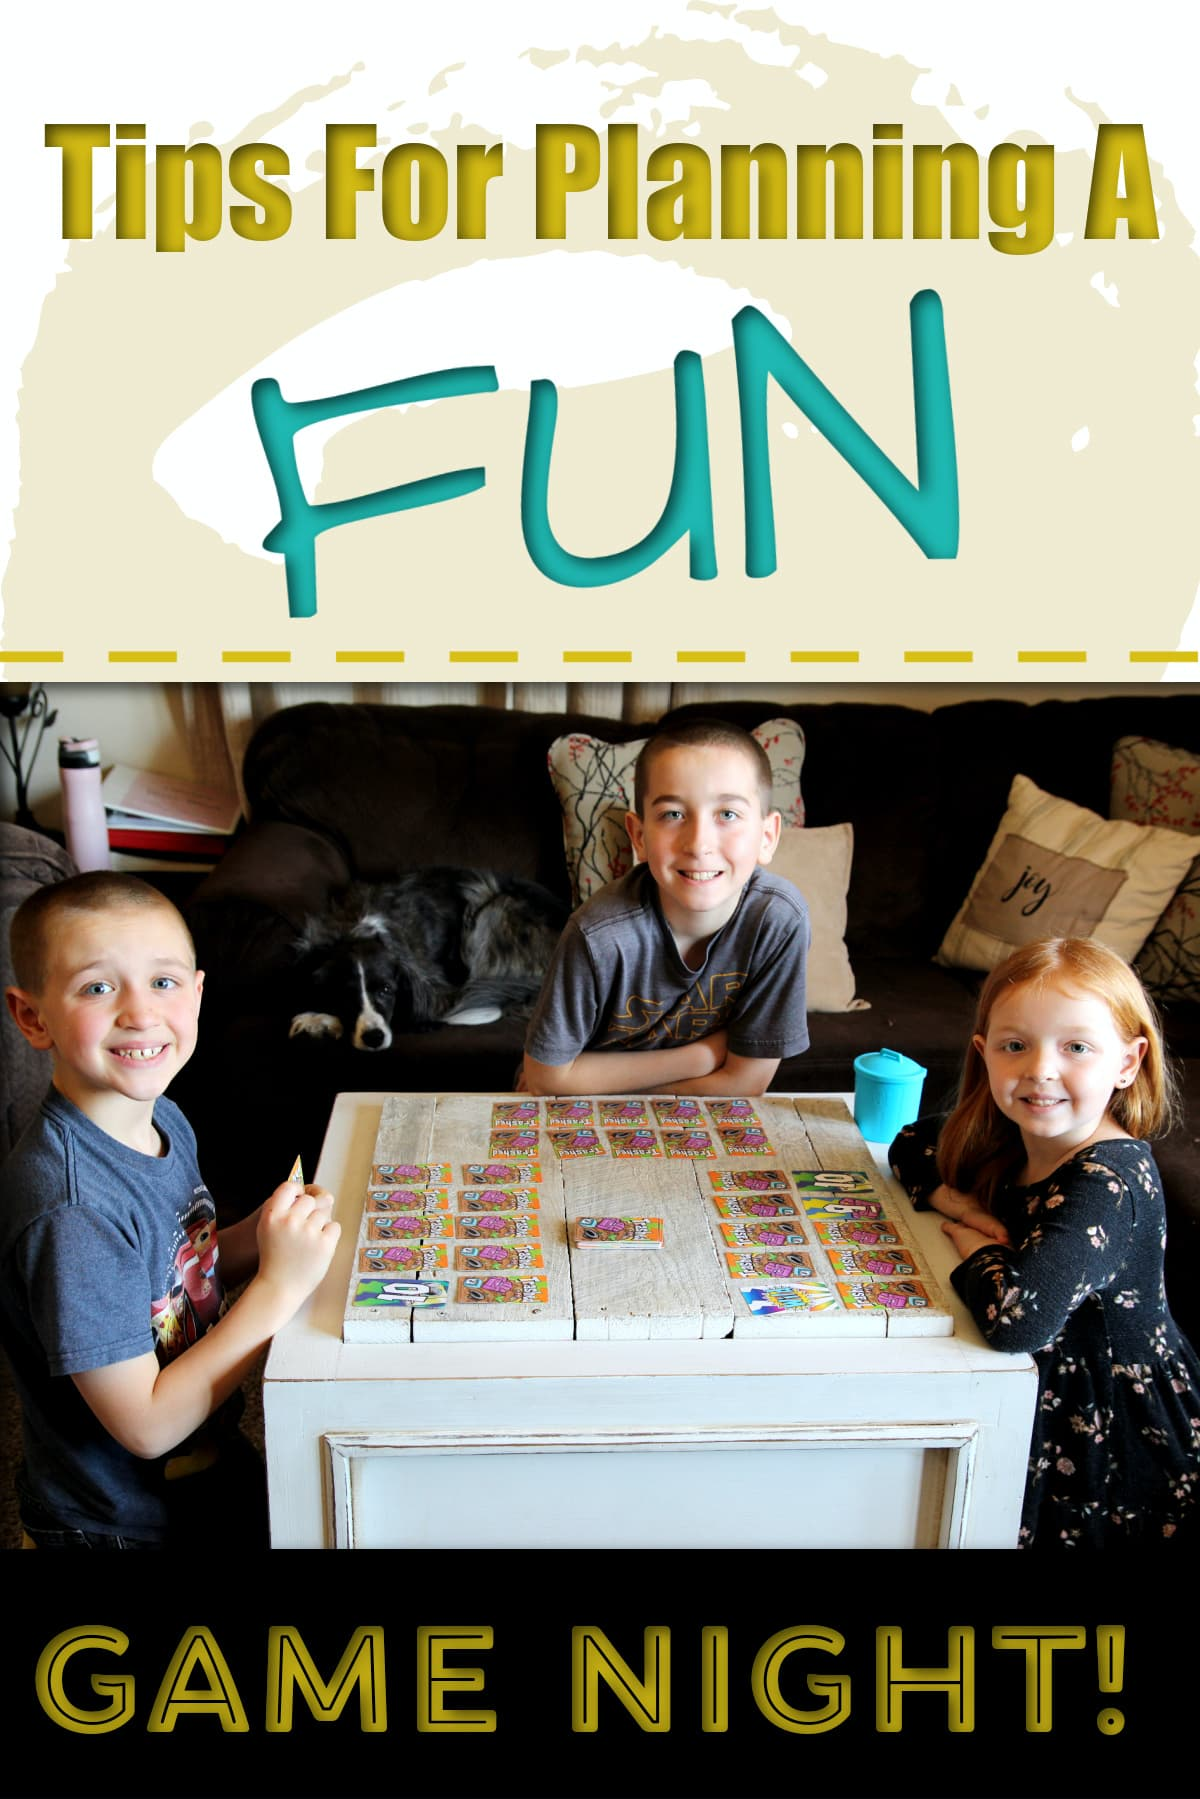 3 Kids Smiling- Tips For Planning A Fun Game Night